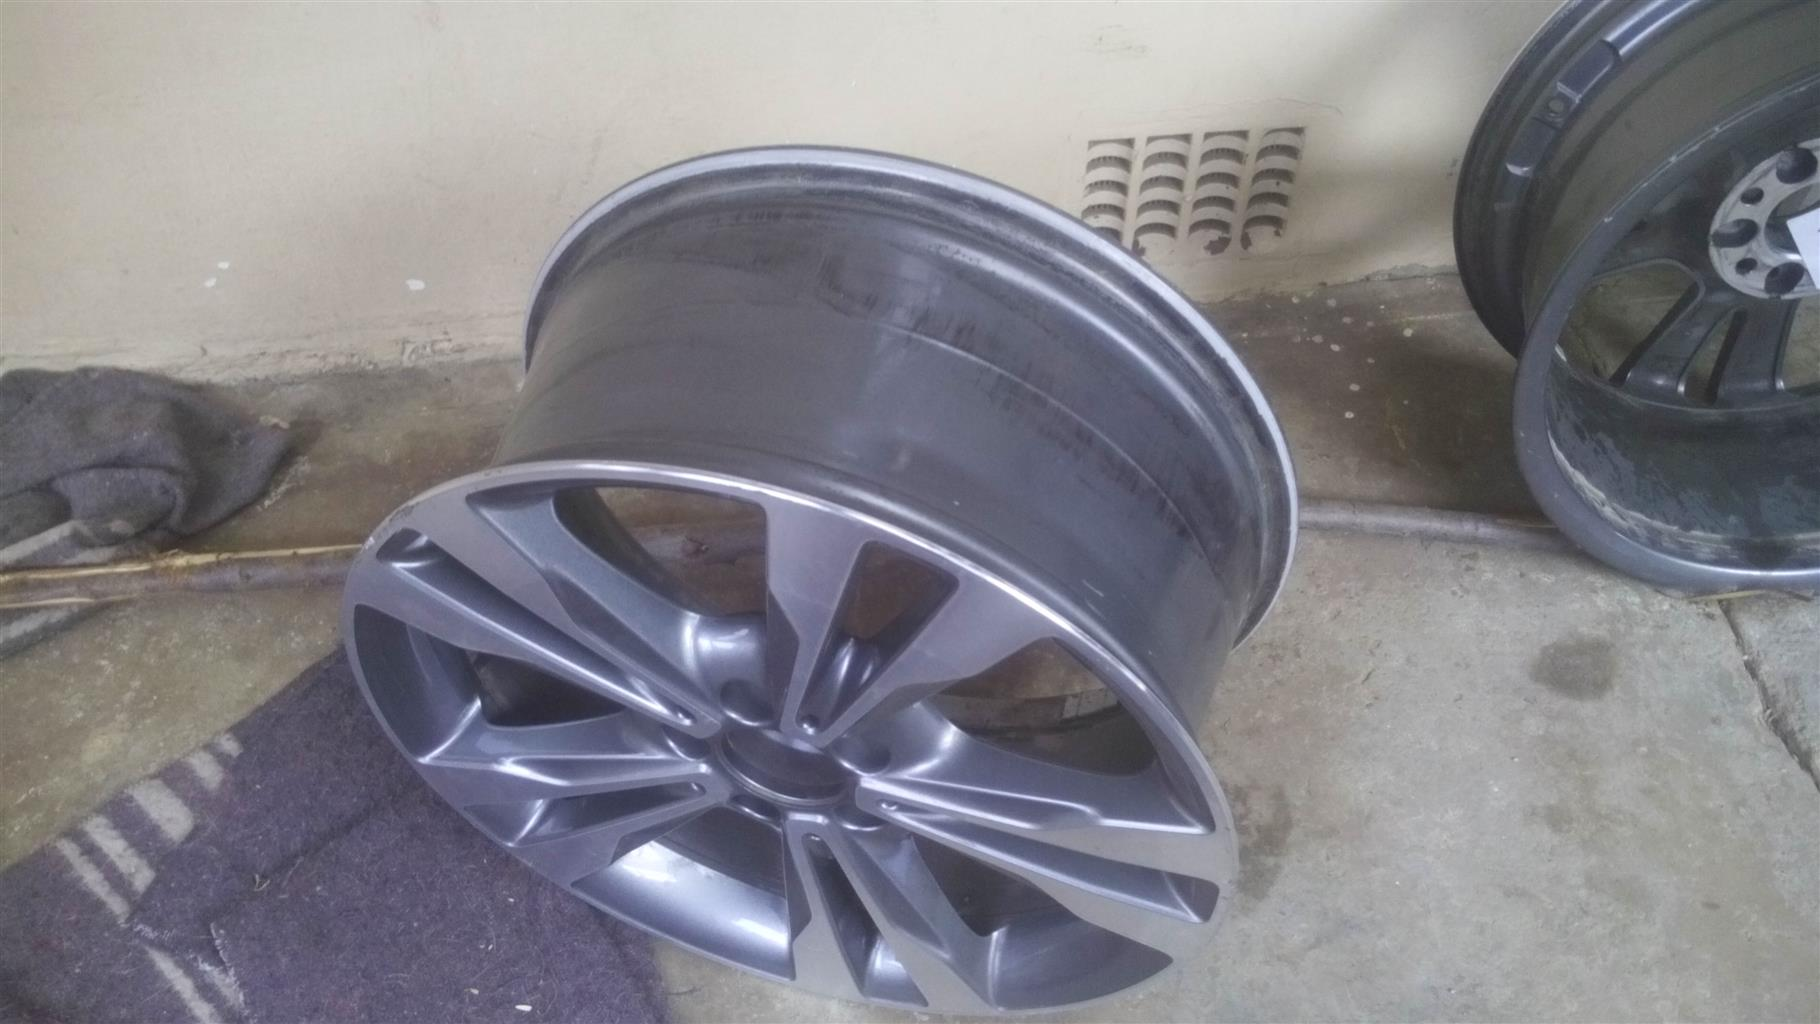 Mercedes 18 inch rims rear mags. Qnly 2